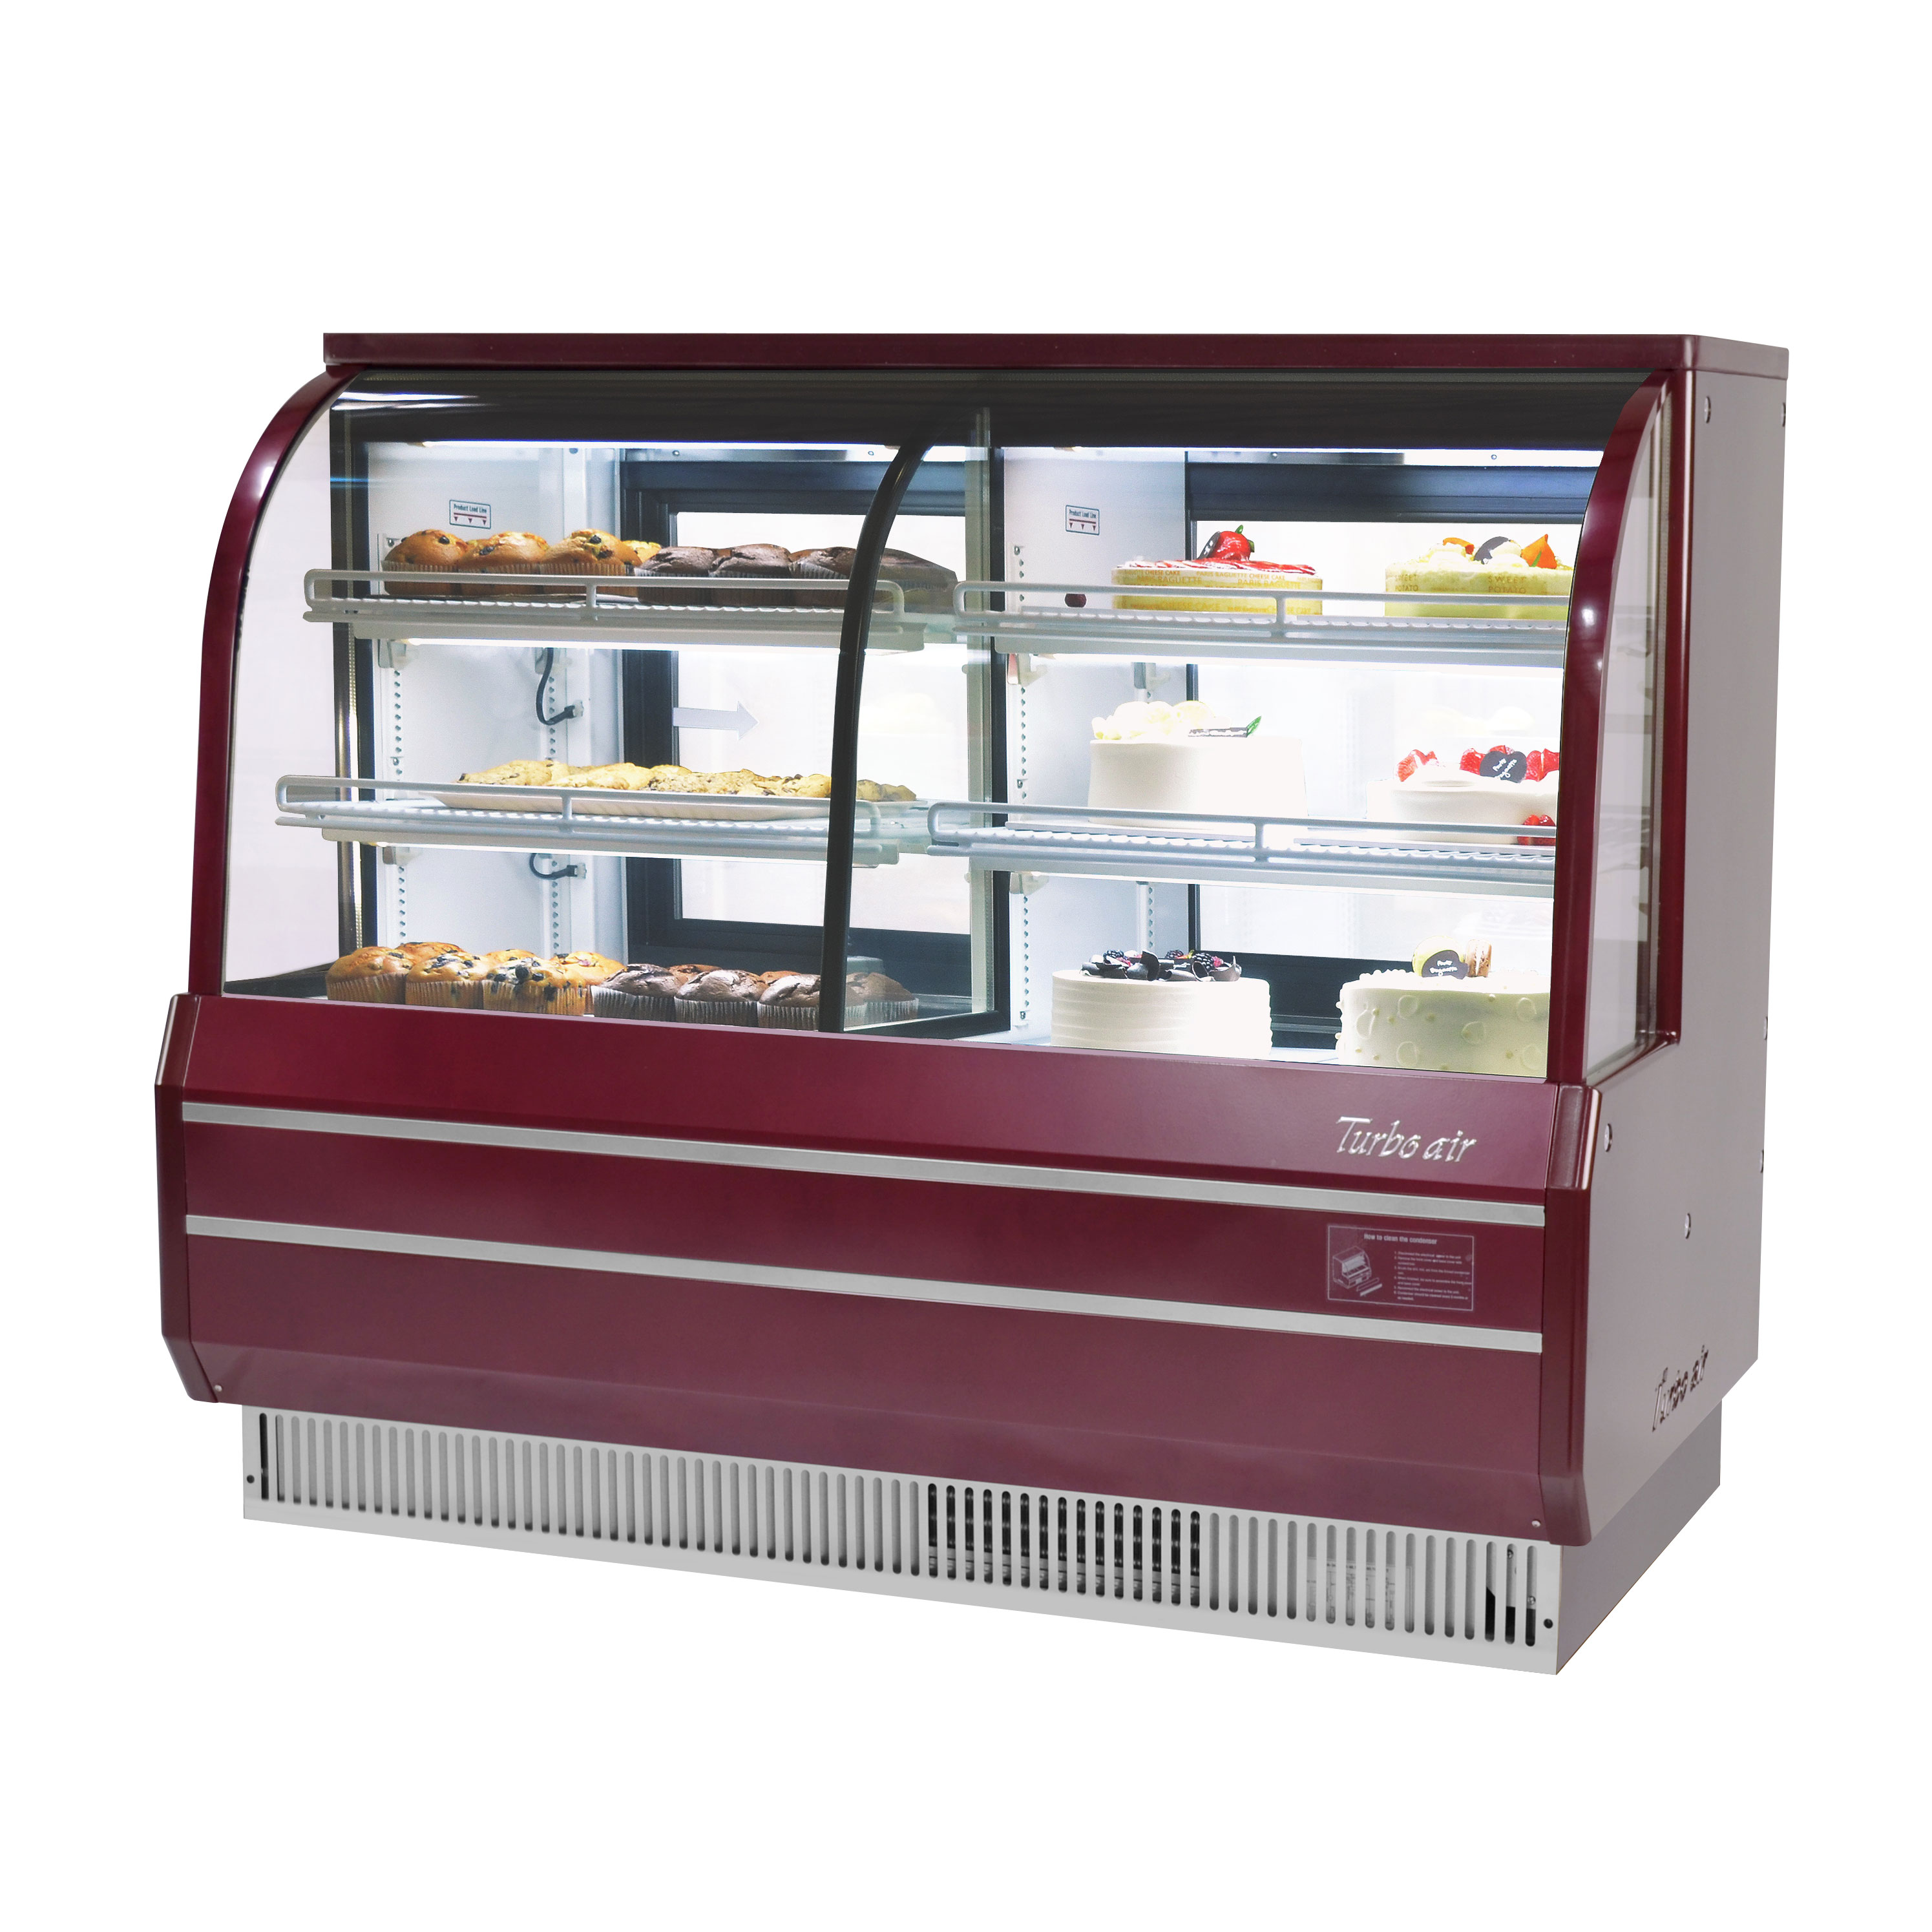 Turbo Air TCGB-72CO-R-N display case, refrigerated bakery